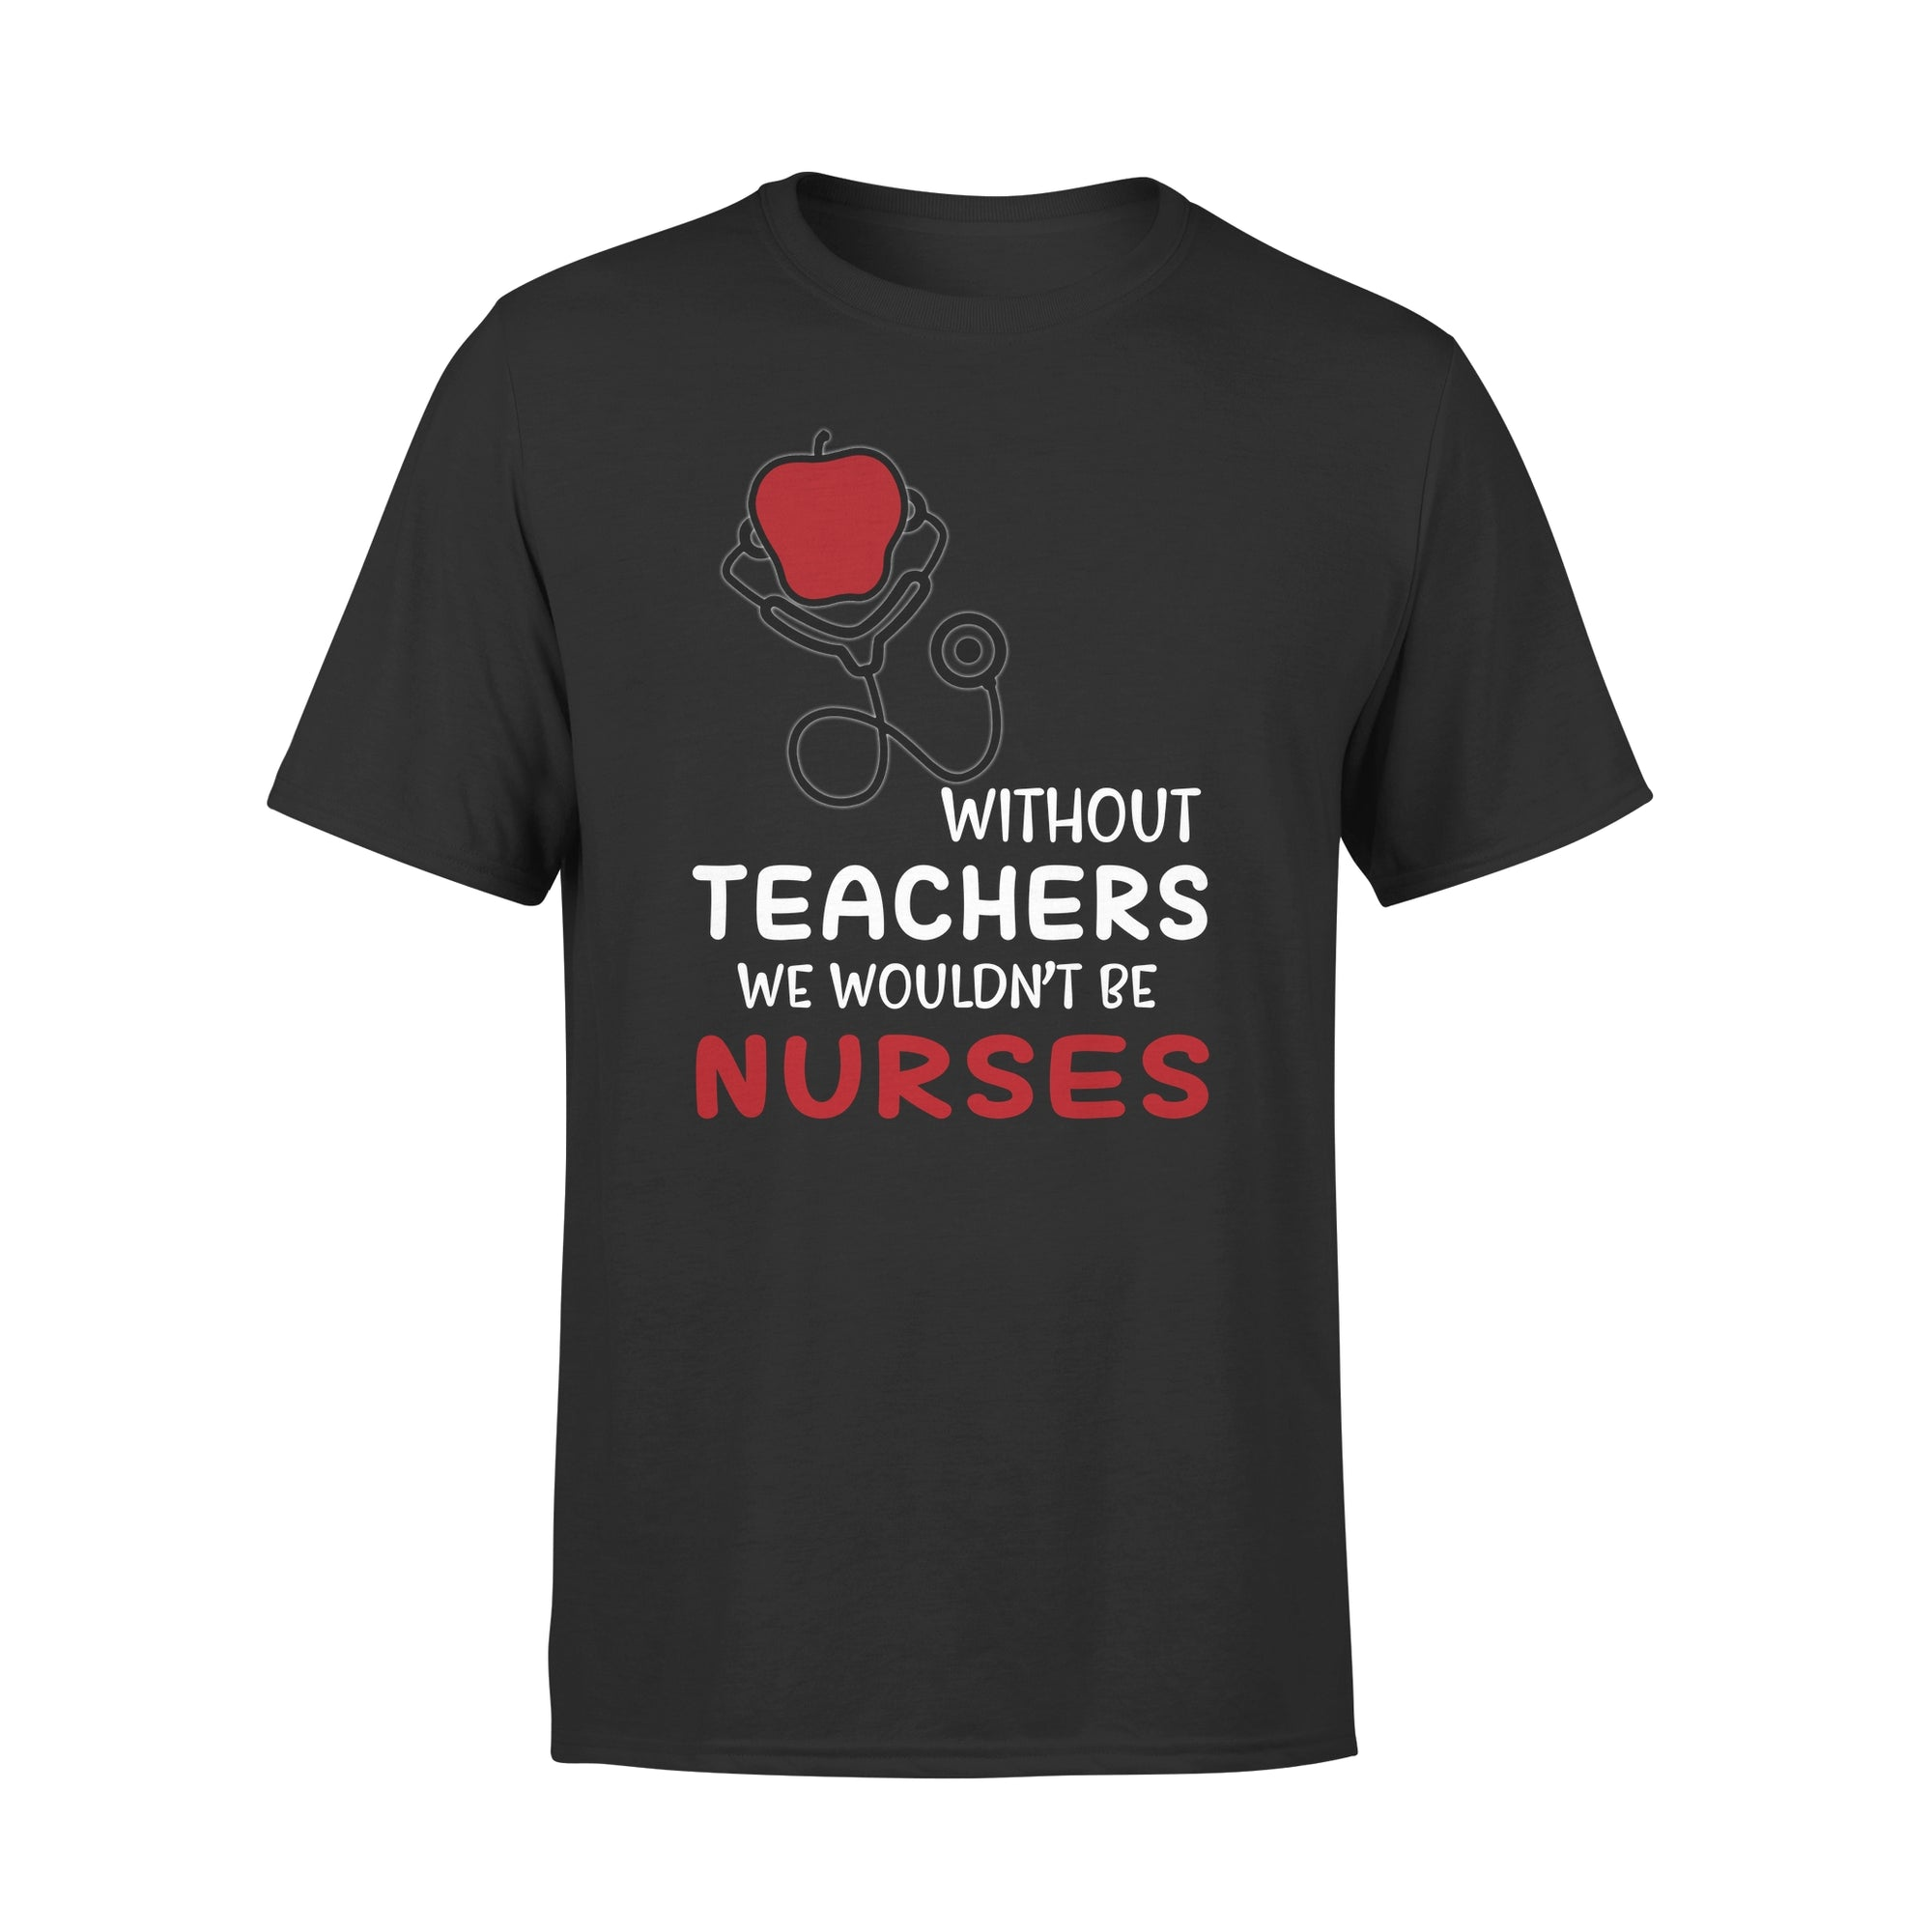 VIRA Premium Tee for awesome teachers & nurses